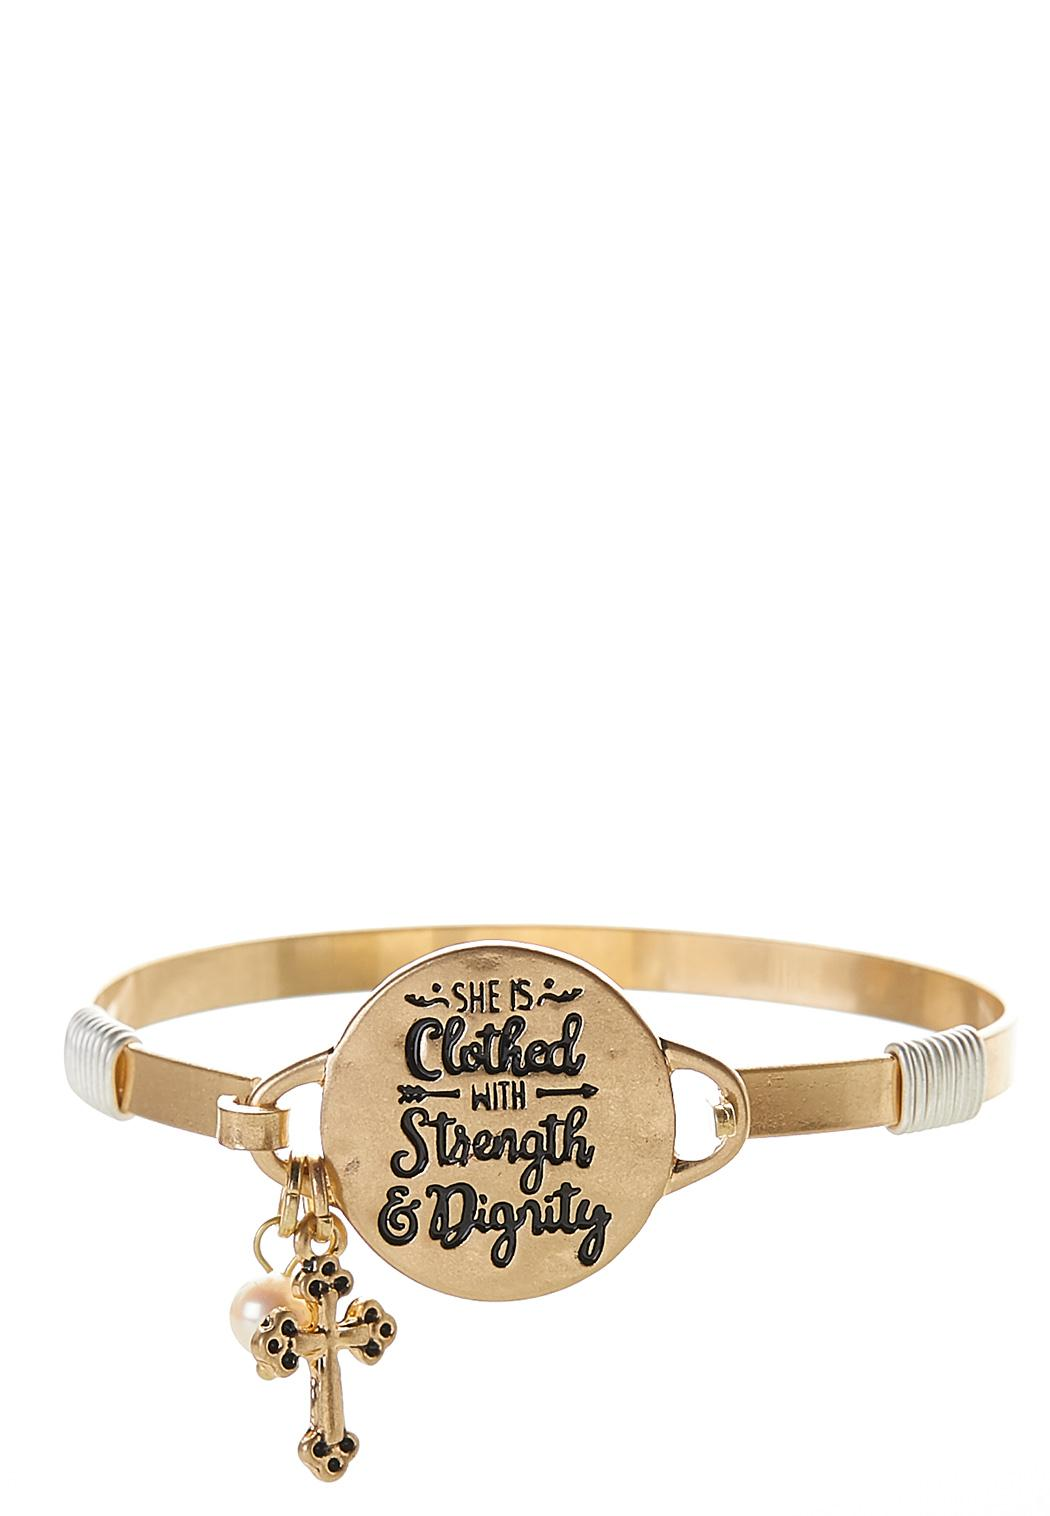 Strength And Dignity Cuff Bracelet